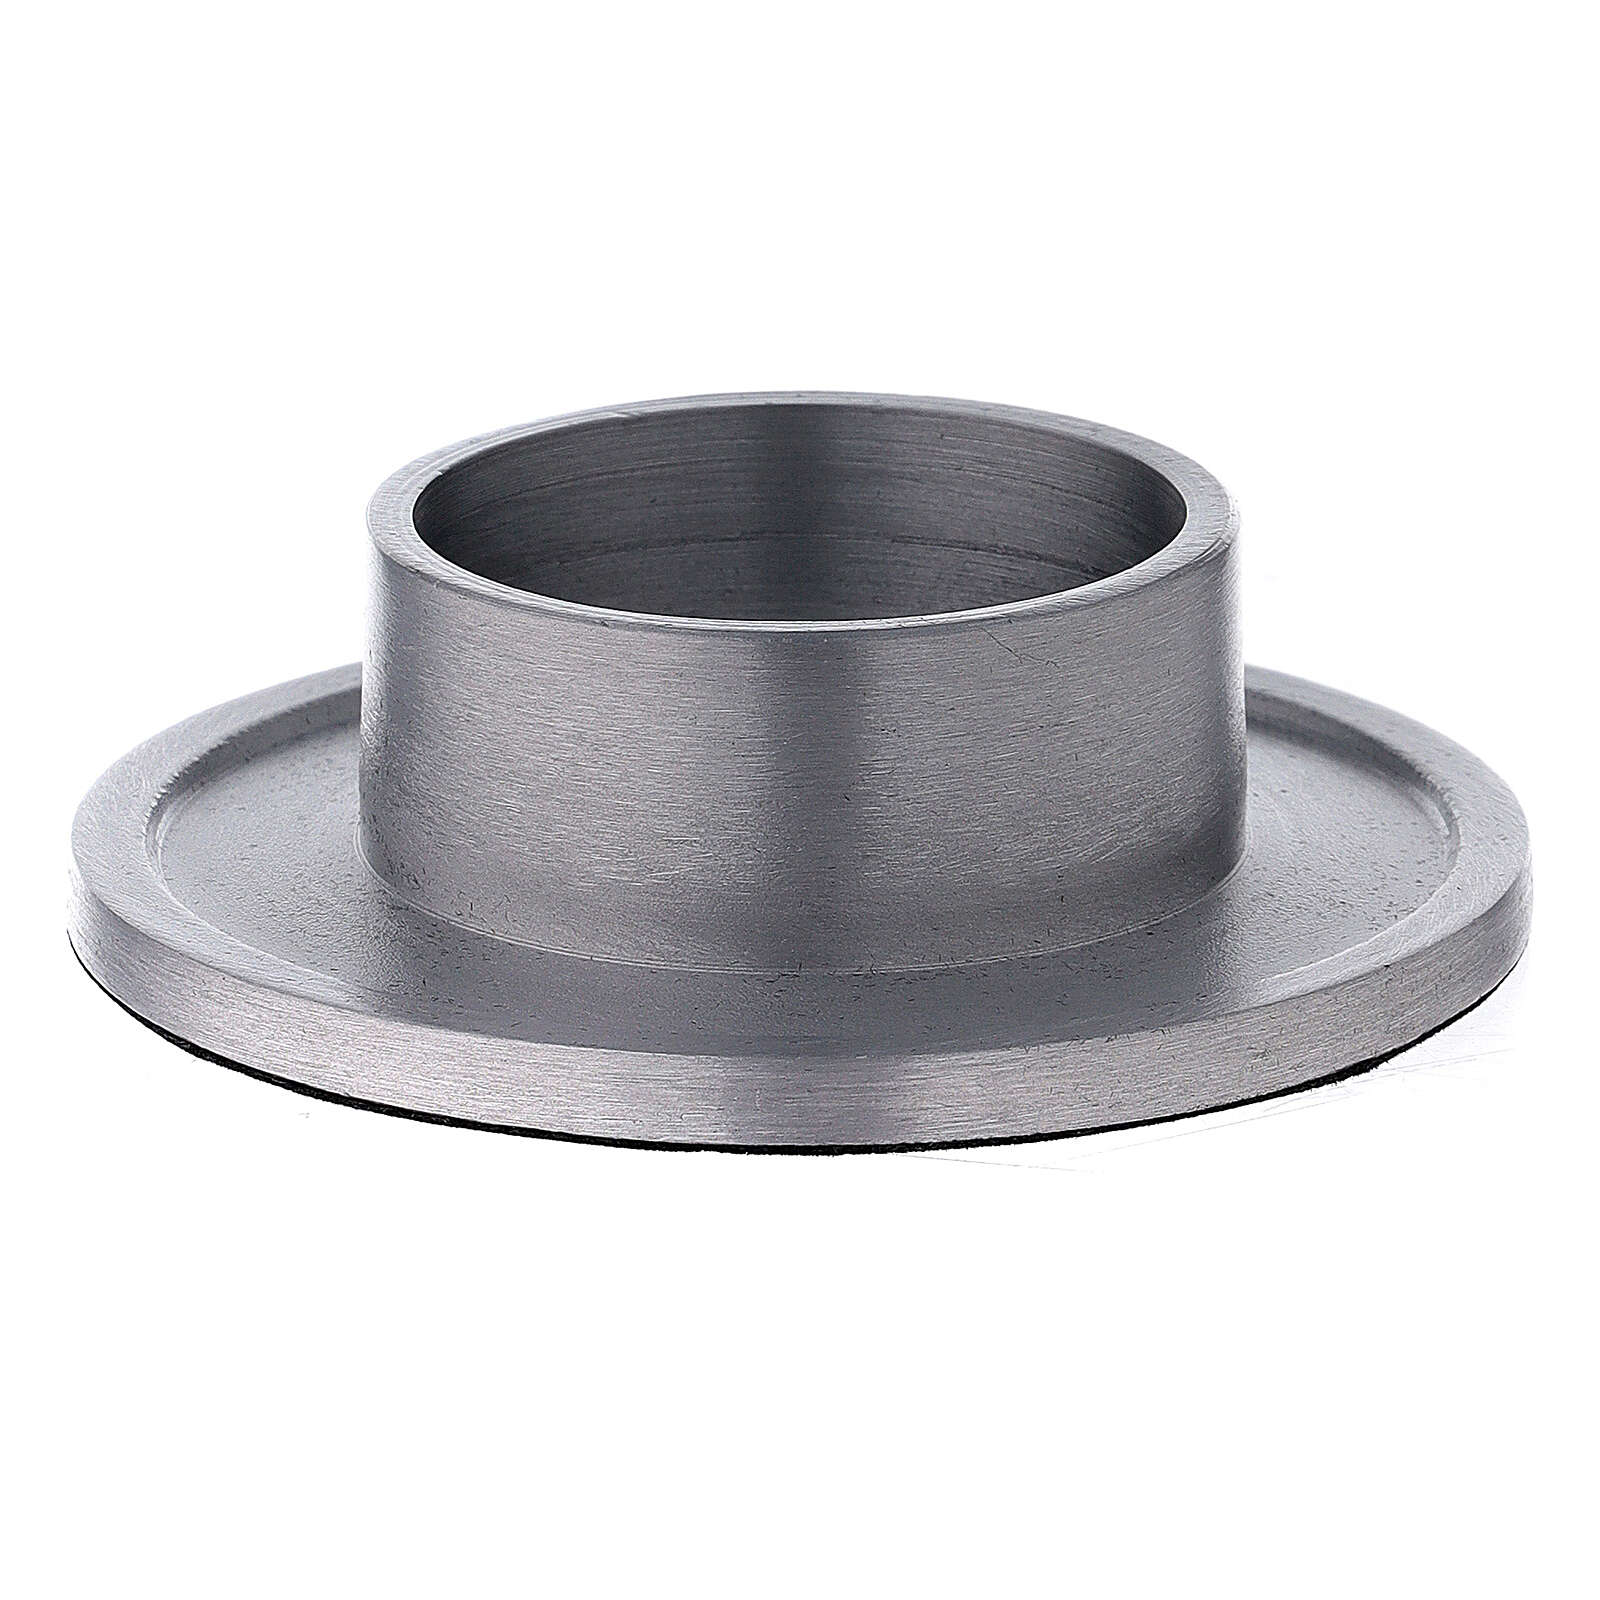 Satin finish aluminium candle holder with socket 2 in 3